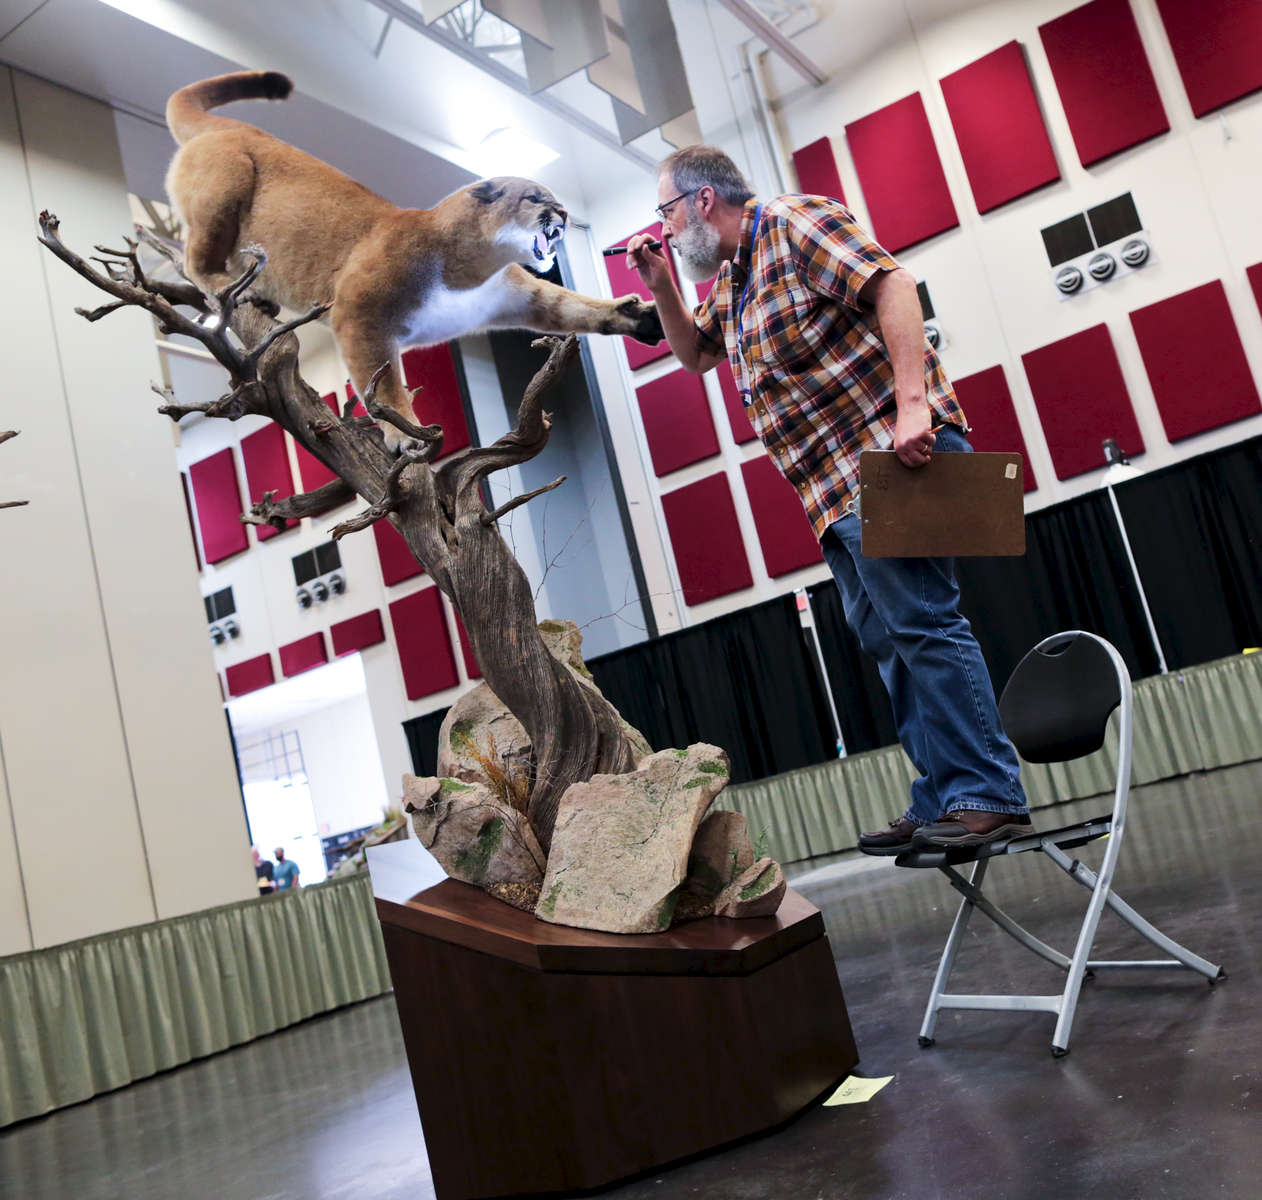 Judge Phil Soucy looks at an entry during the World Taxidermy & Fish Carving Championships, at the Springfield Expo Center, in Springfield, Missouri on May 1, 2019.